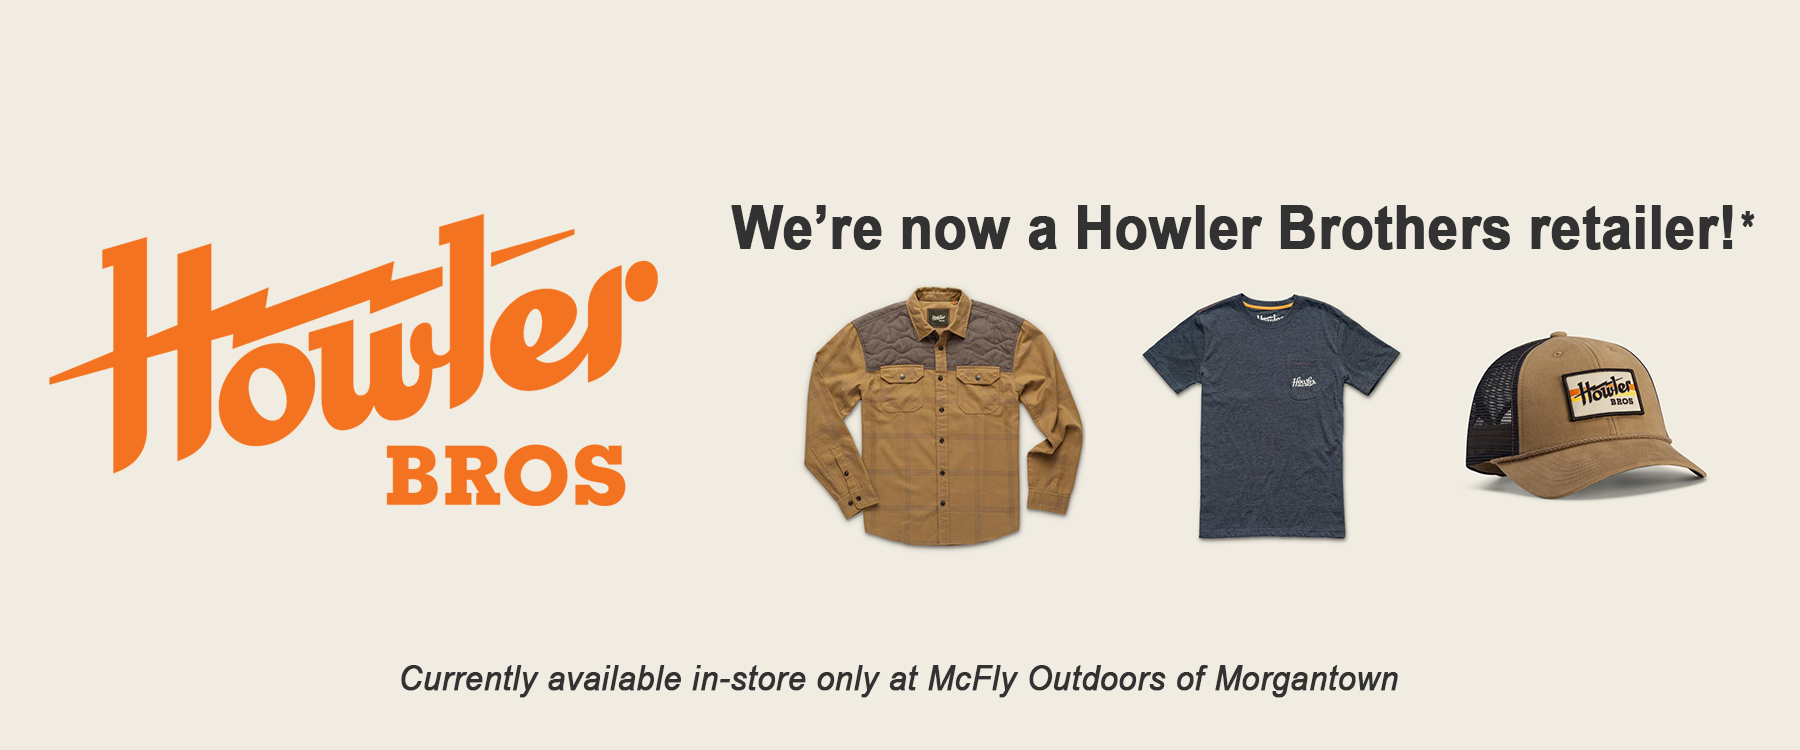 intro-howler-082019.png